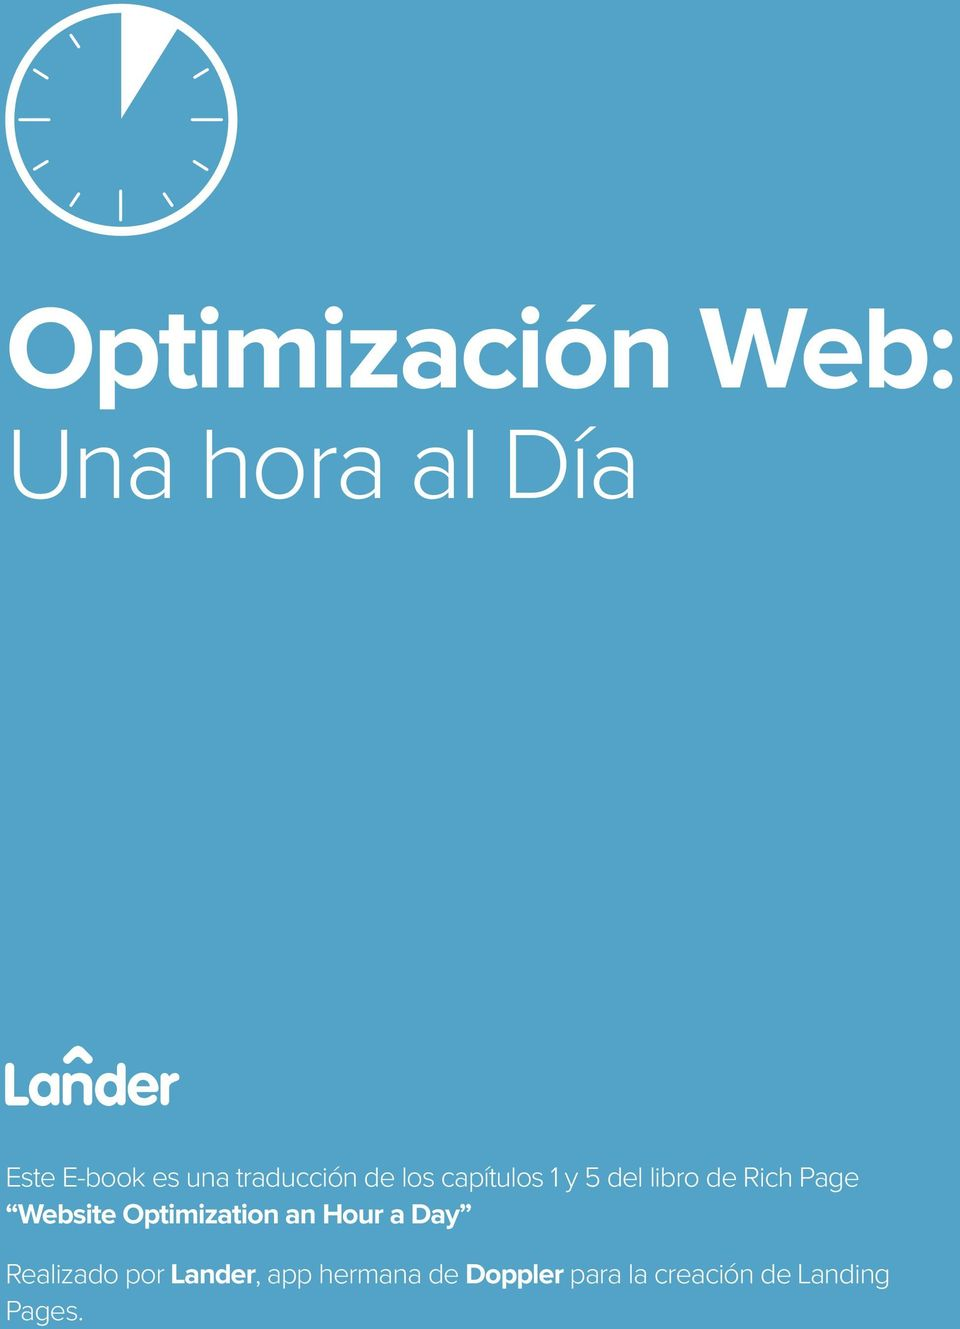 Page Website Optimization an Hour a Day Realizado por